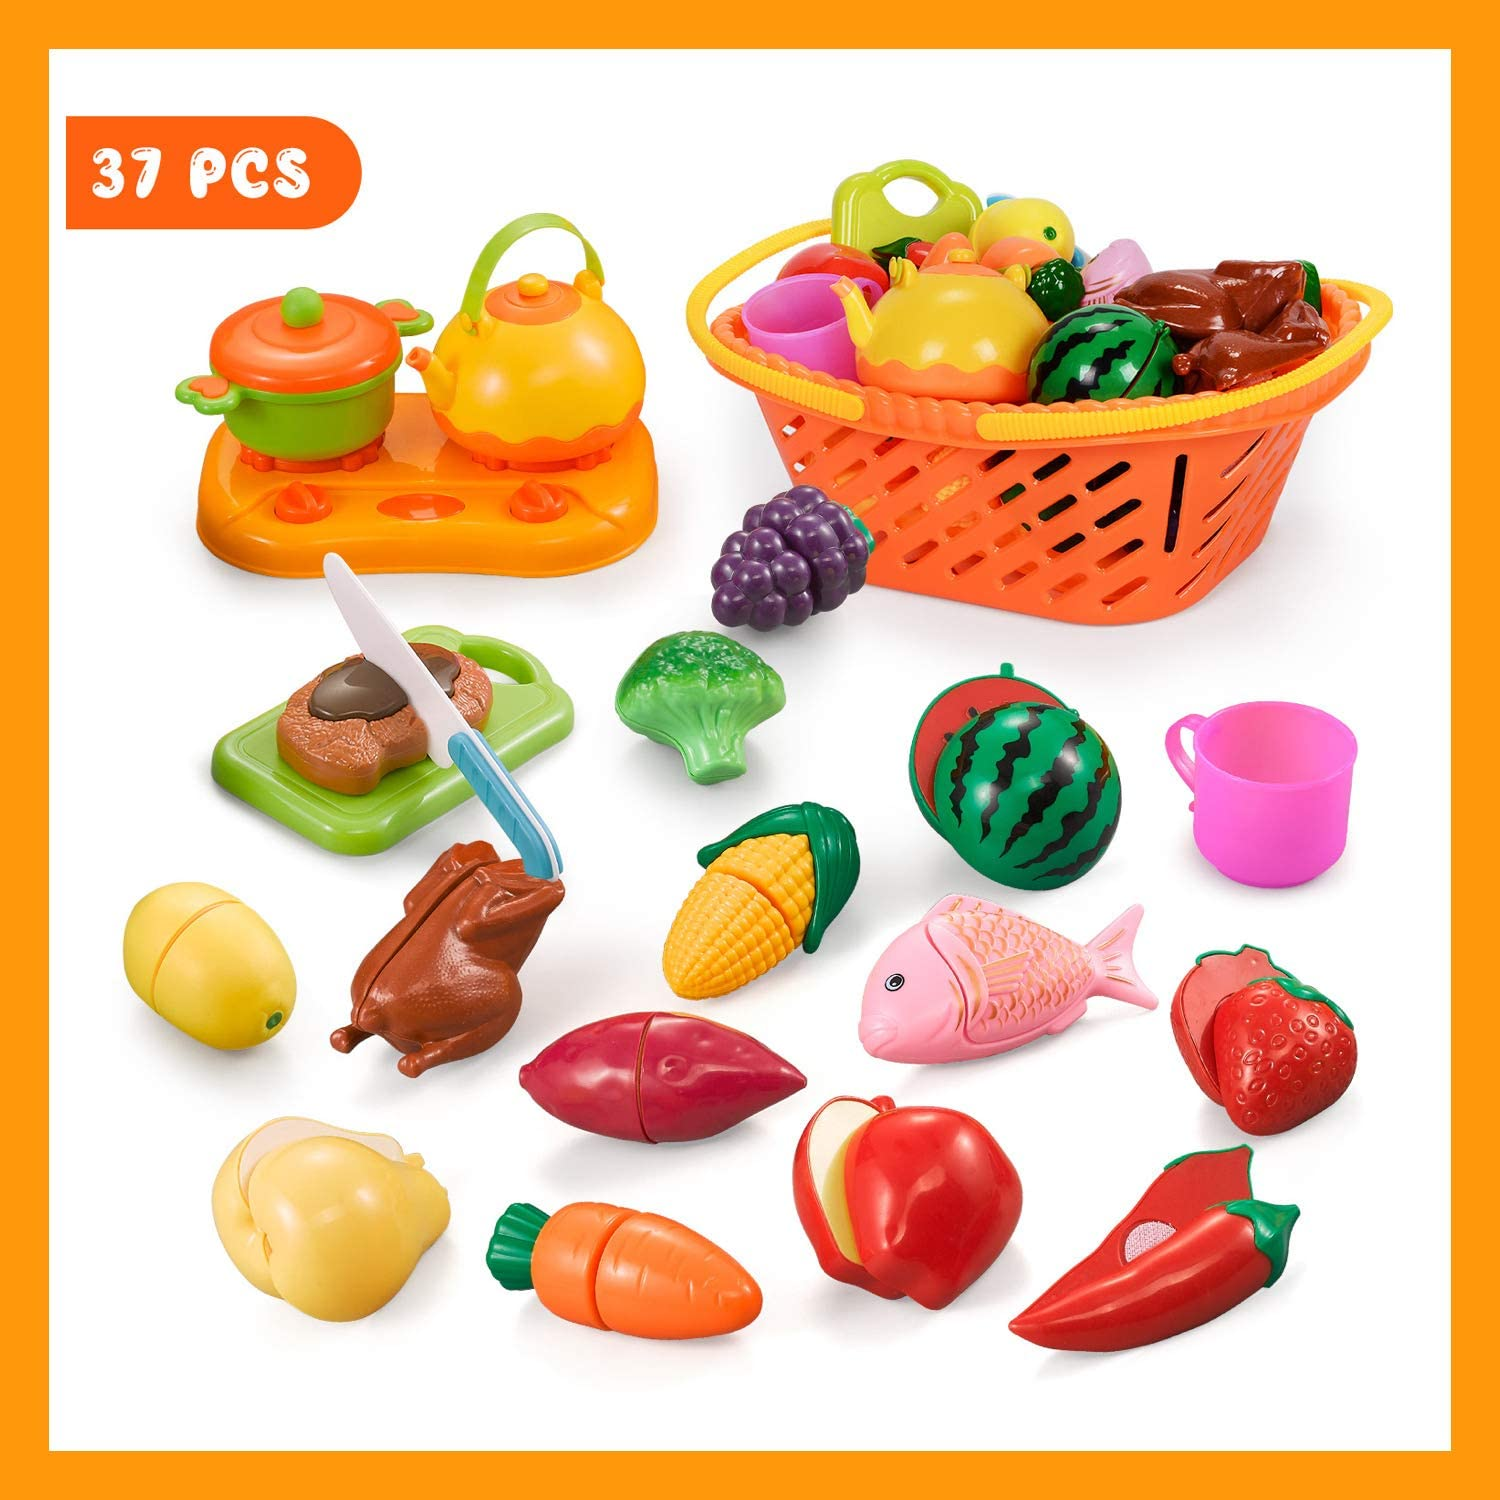 NextX Play Kitchen Food, Cutting Fruits and Vegetables Educational Toys, Pretend Toy Food Set for Toddlers 6 to 12 Months, Toy Kitchen Accessories for Baby with Storage Market Basket